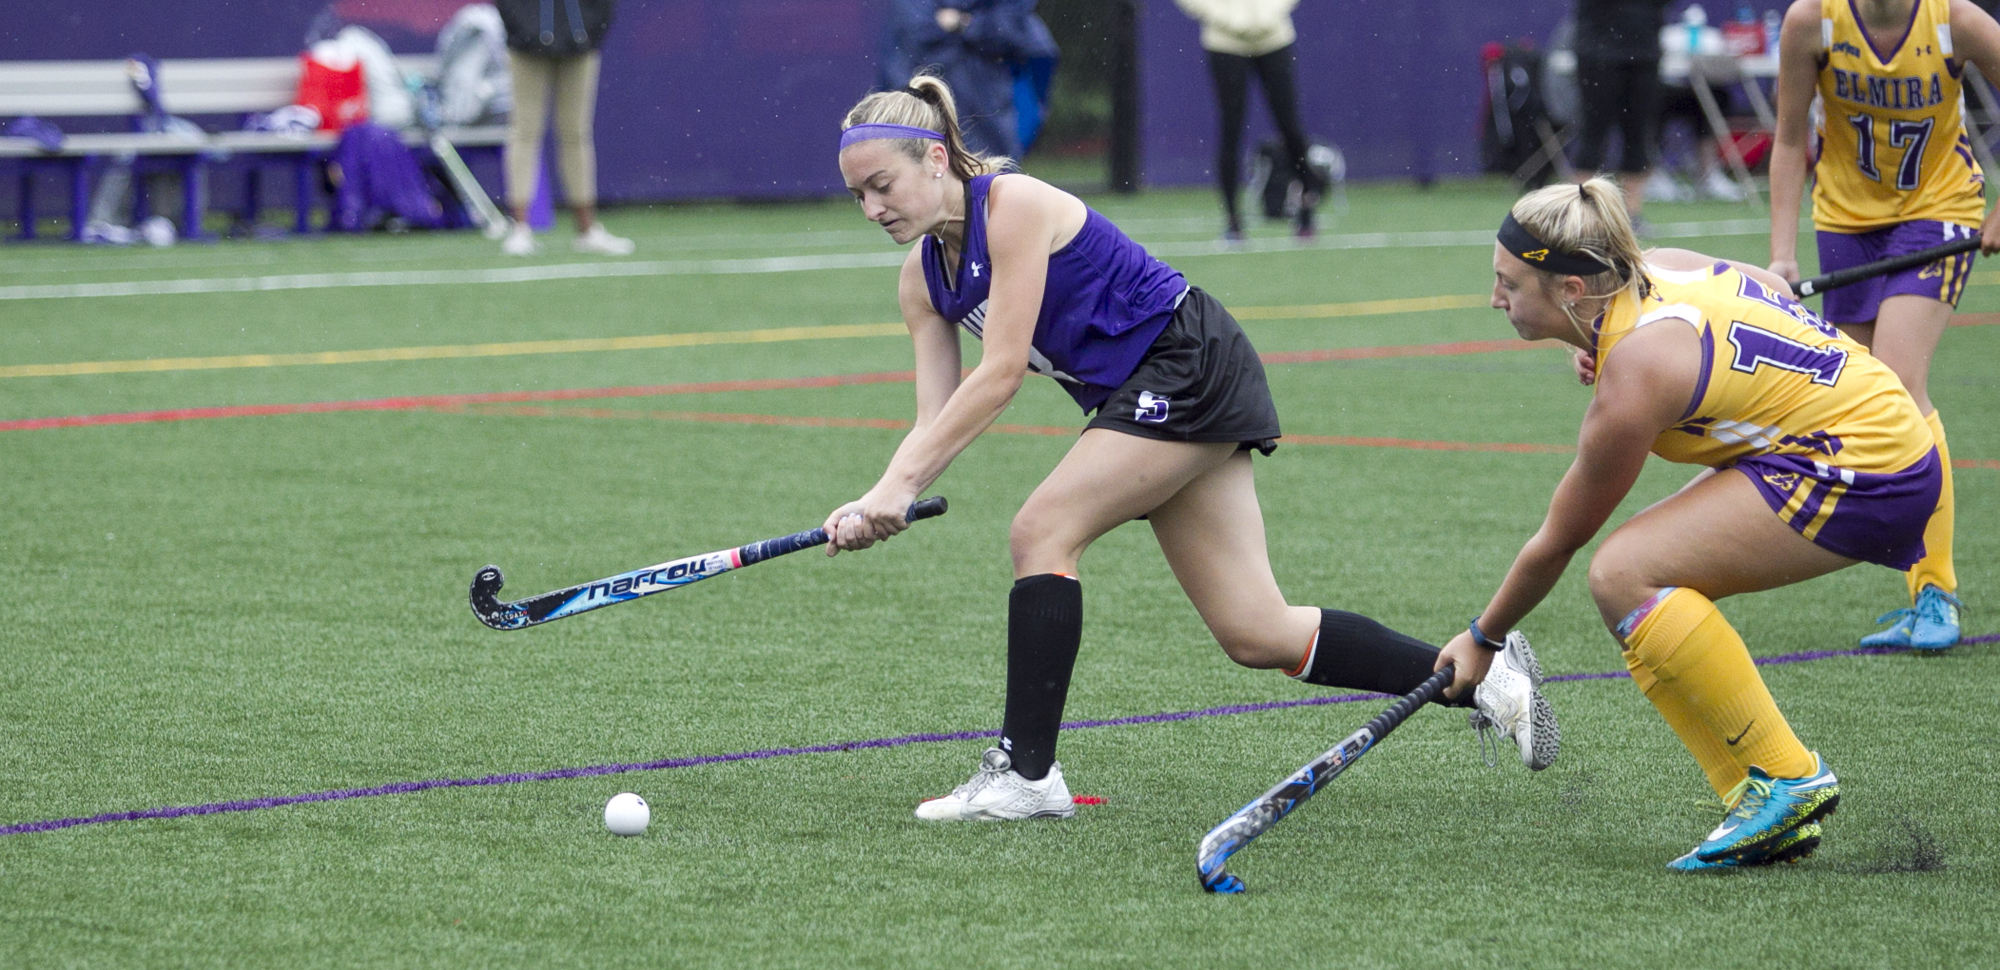 Brianna Witt scored her first collegiate goal on Saturday in Scranton's 3-2, double overtime loss to Catholic.